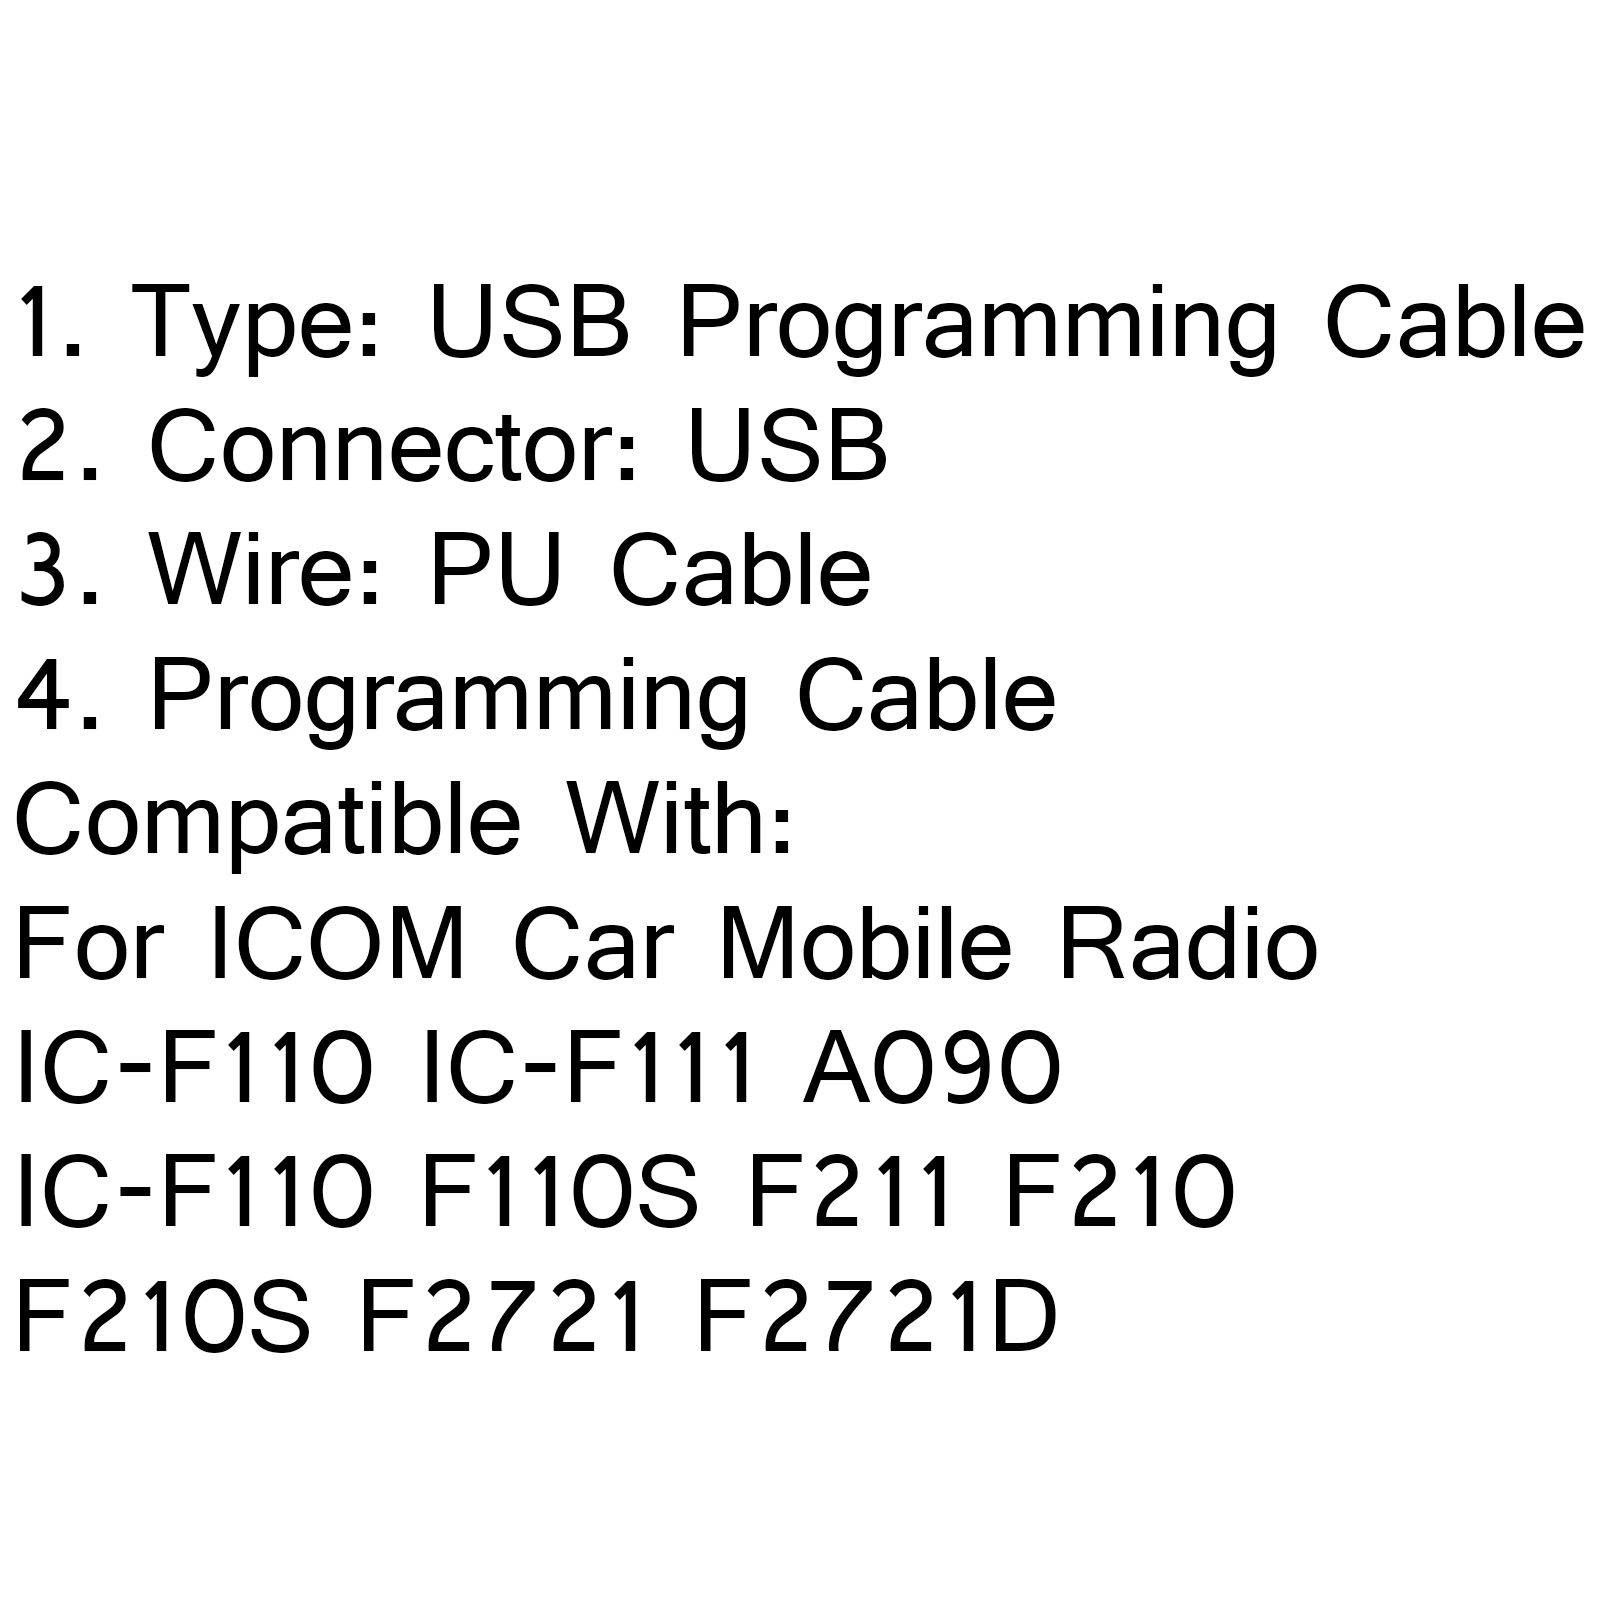 Usb Programming Cable Opc U For Icom Car Mobile Radio